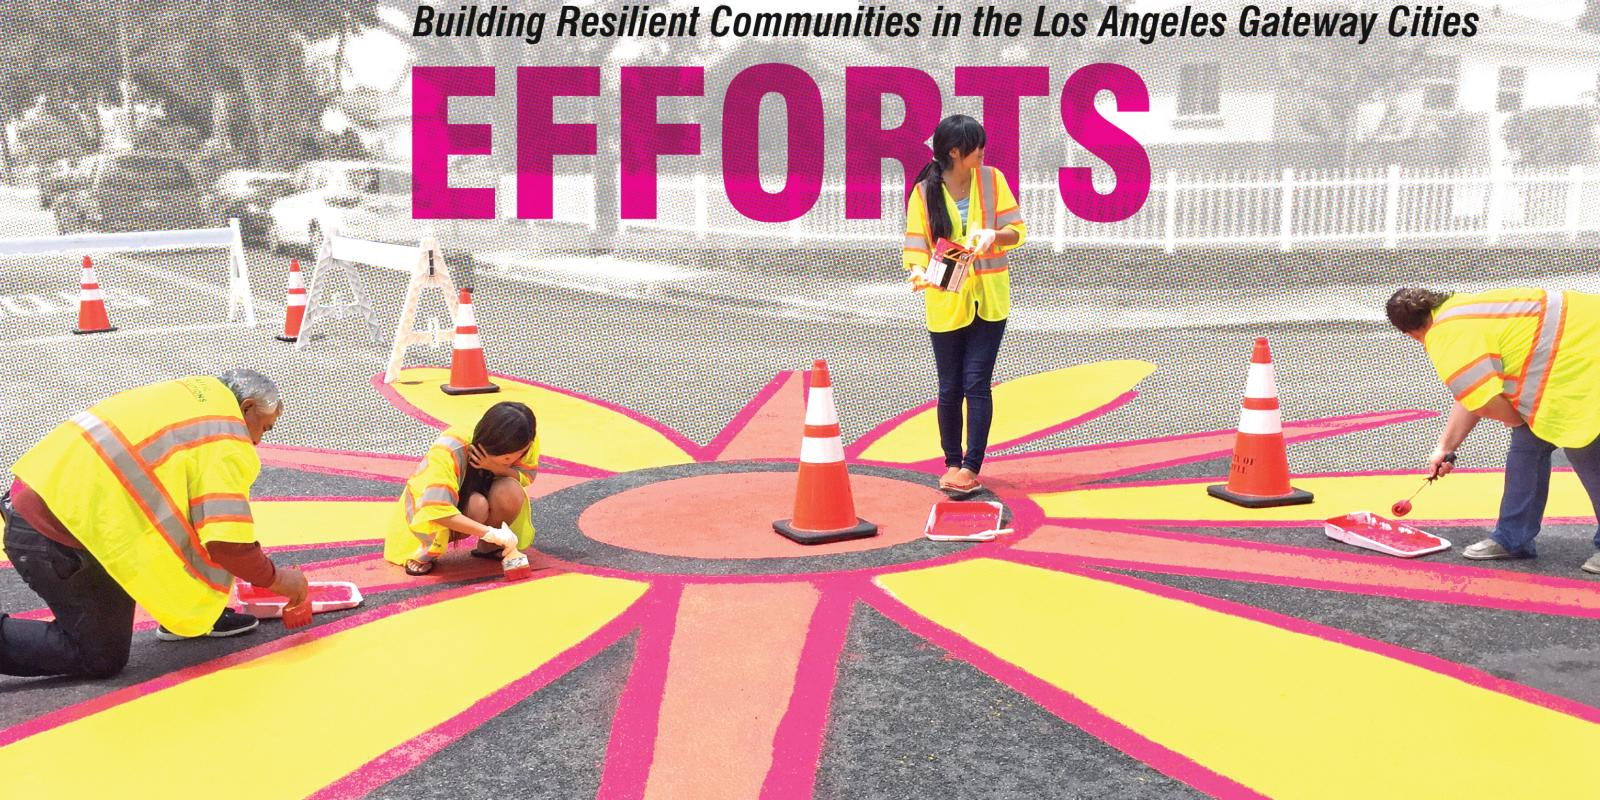 606 Project Won ASLA Award of Excellence in Community Service Category